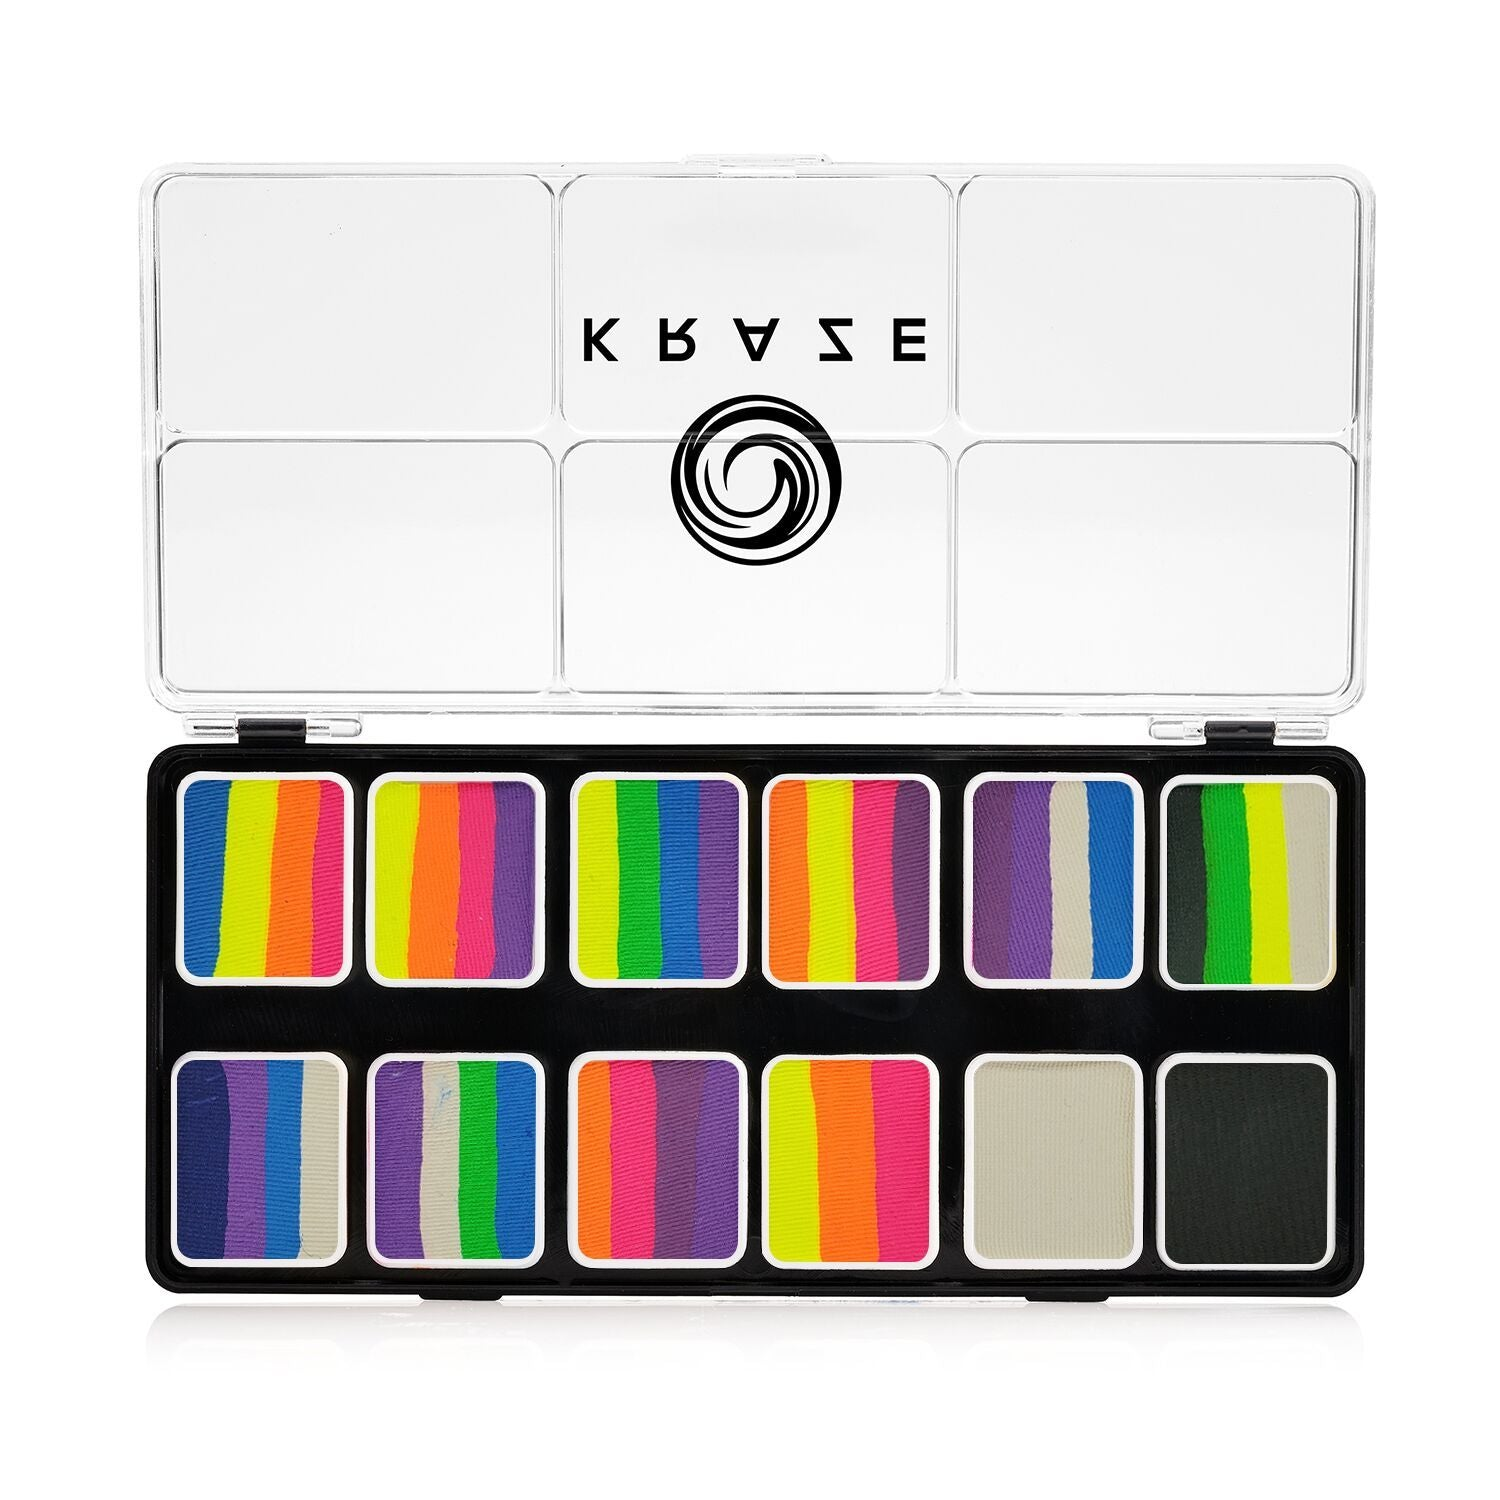 Kraze FX 12 Neon Pop One Stroke Split Cake Palette (6 gm each)